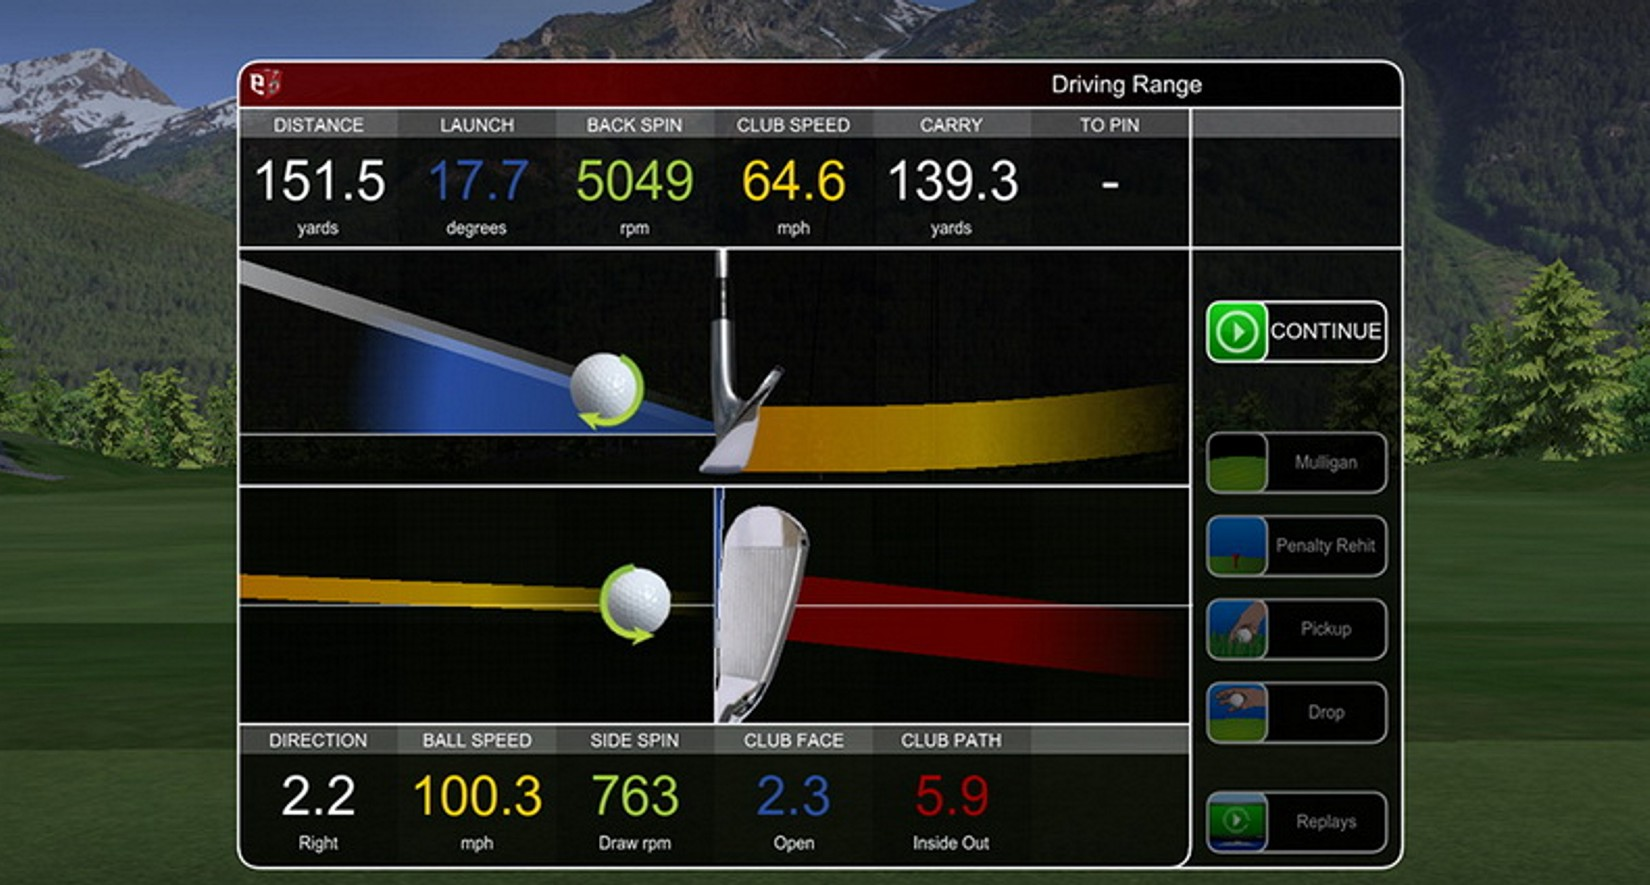 Die Schlaganalyse des Golf Simulators mit Ball Spin, Club Head Speed, Club Face Angle